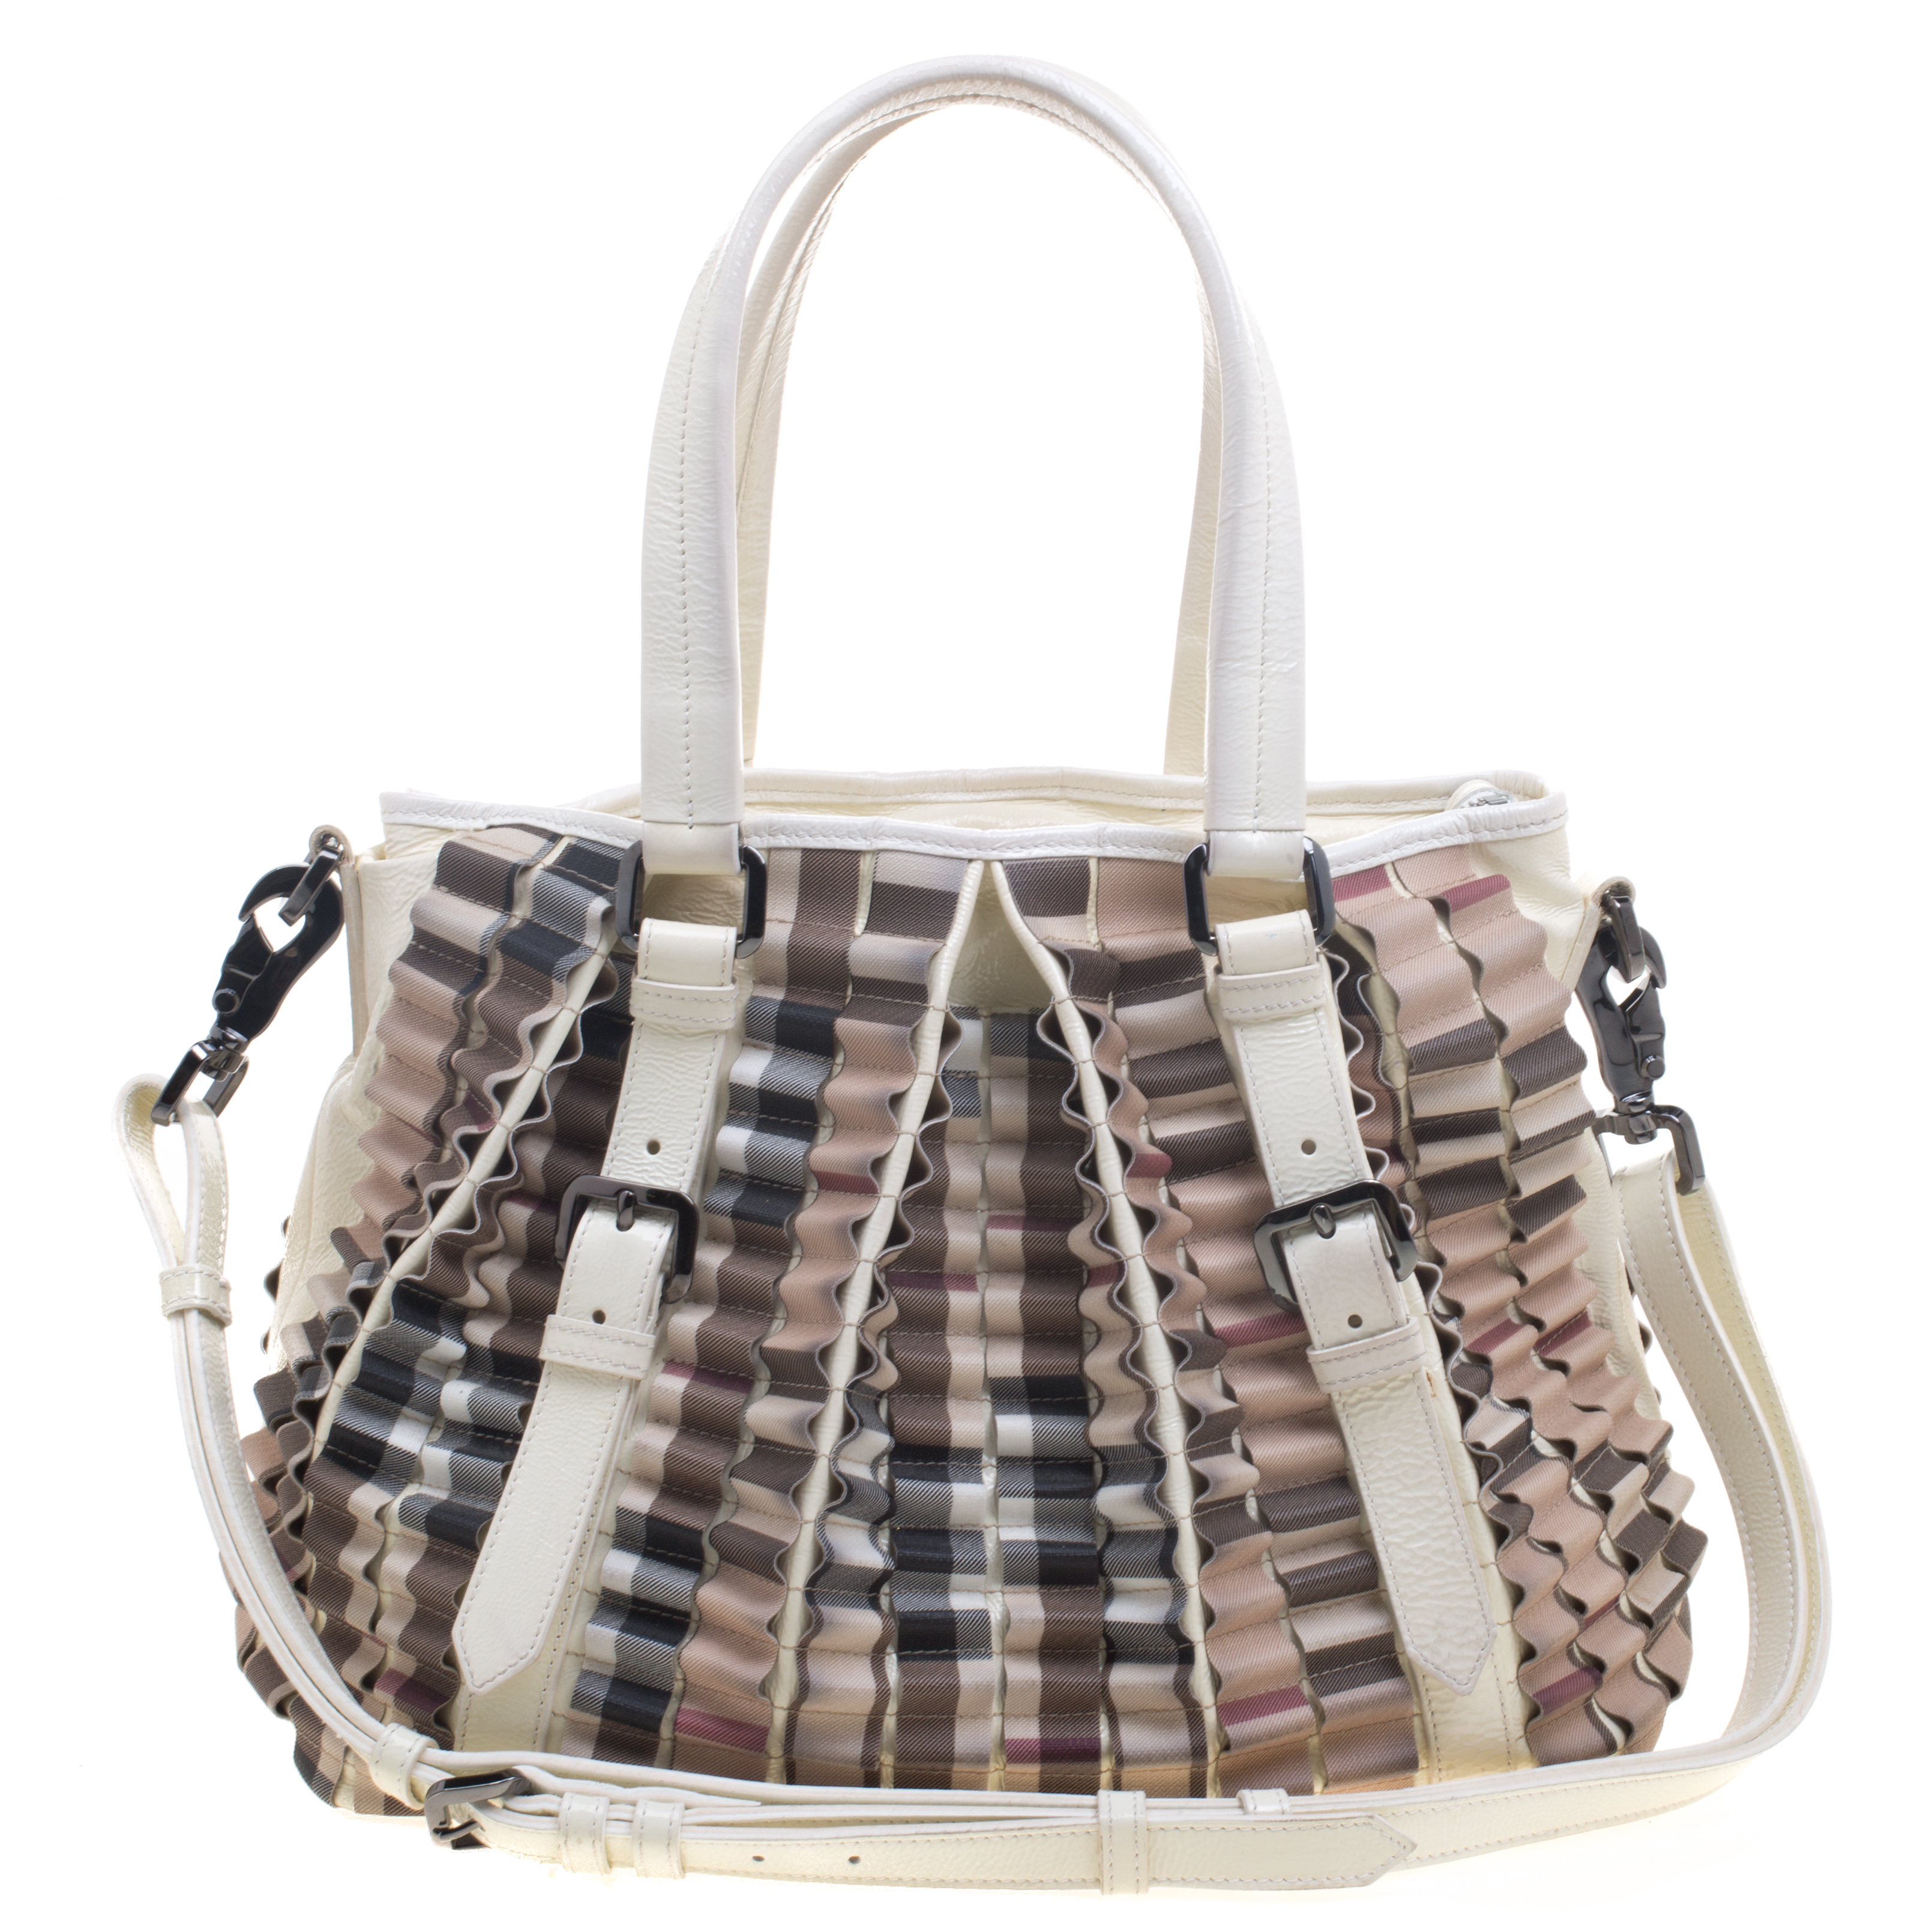 d06c00aaa383 Buy Burberry Cream Nova Check PVC Cartridge Pleat Tote 94365 at best ...